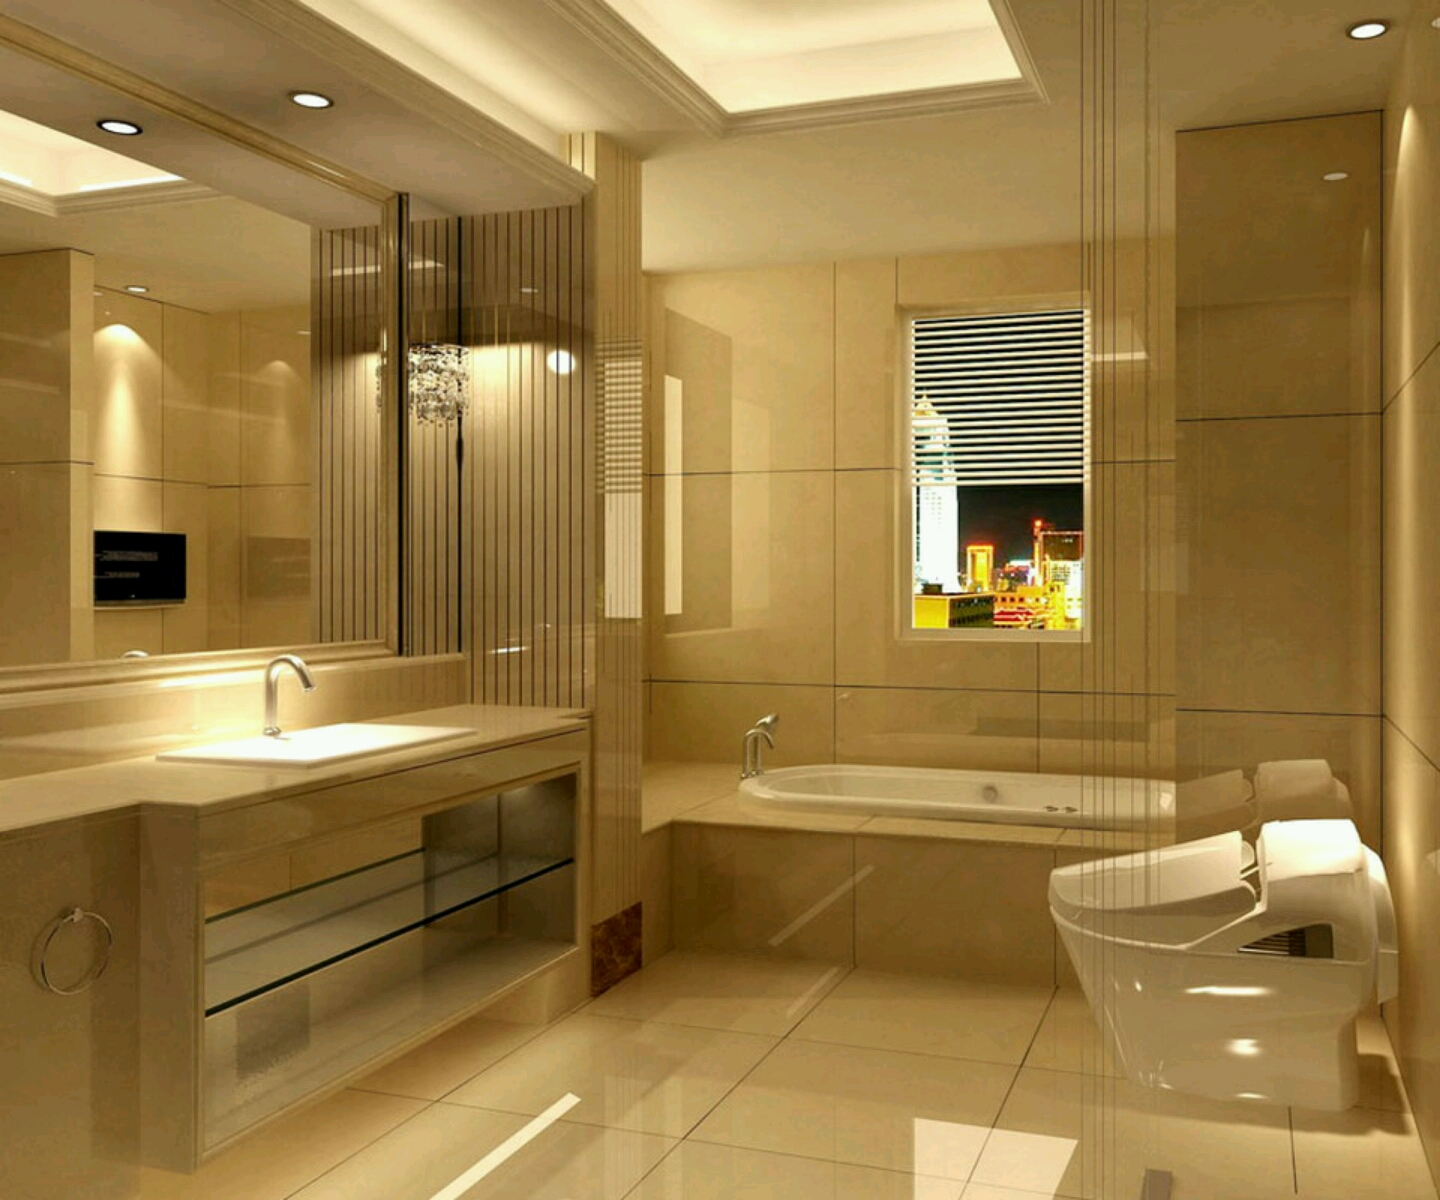 Modern bathrooms setting ideas furniture gallery Beautiful modern bathroom design